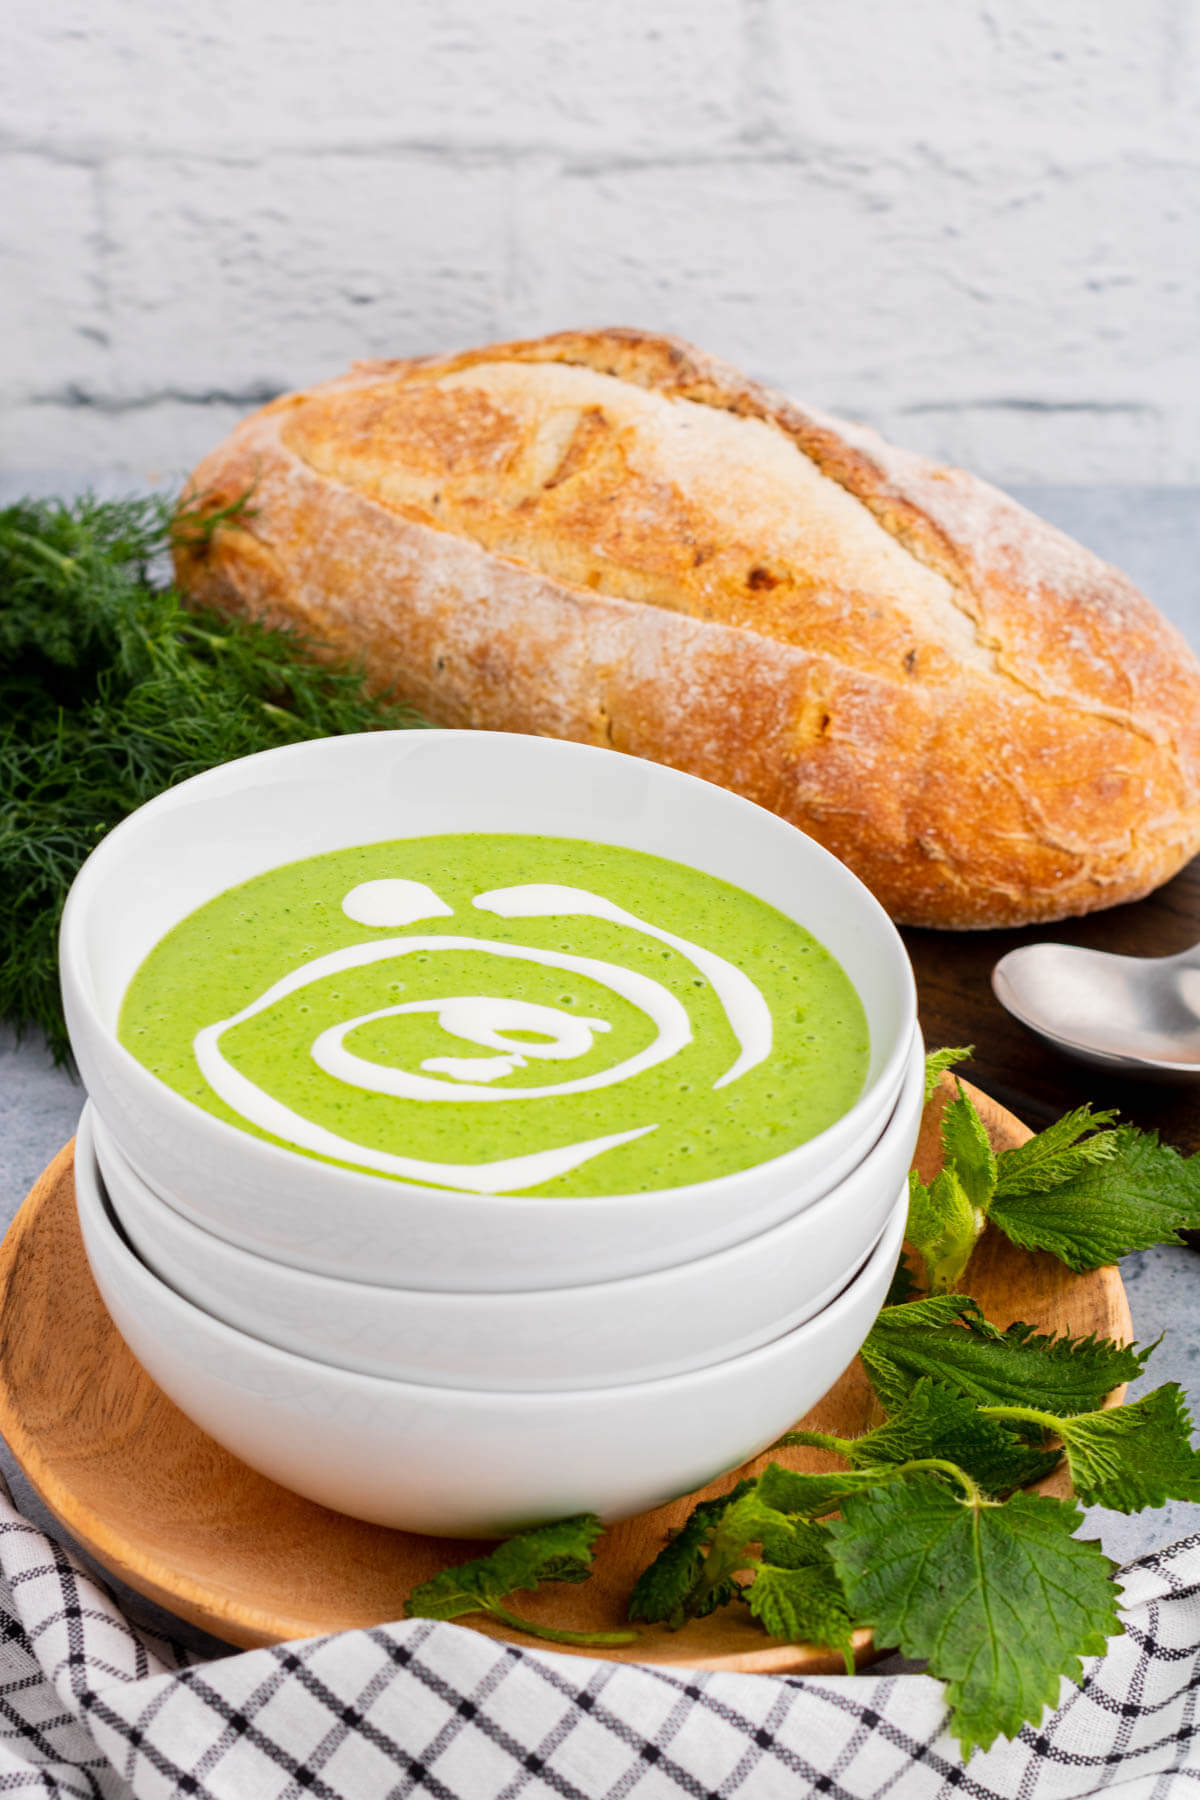 A stack of white bowl with the top containing bright green Nettle Soup garnished with swirls of crème fraiche.